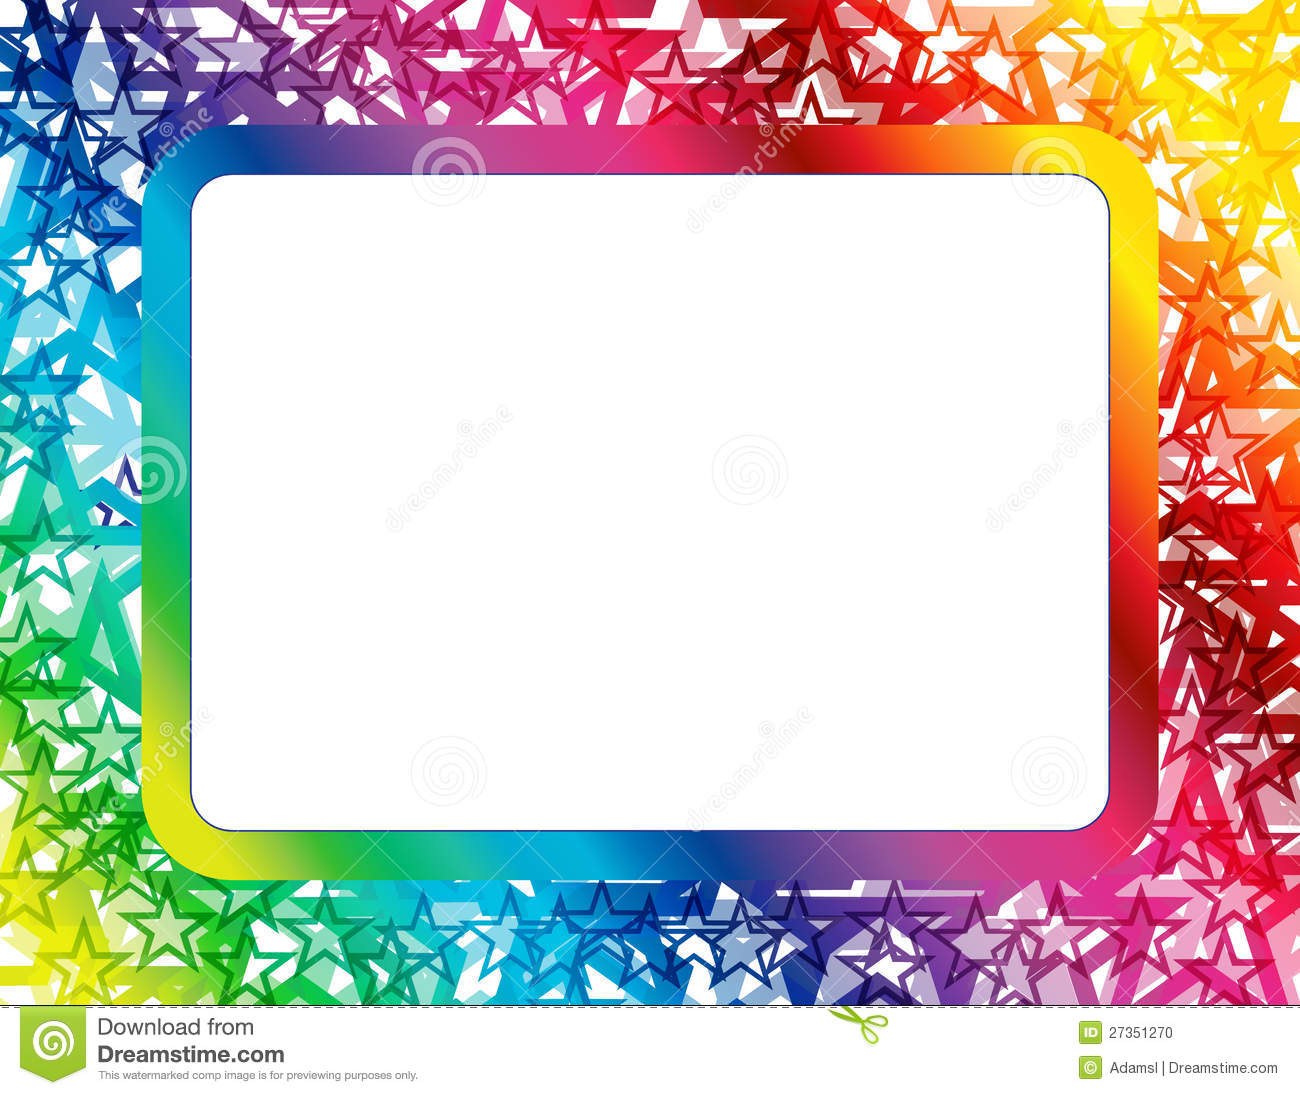 rainbow wallpaper border